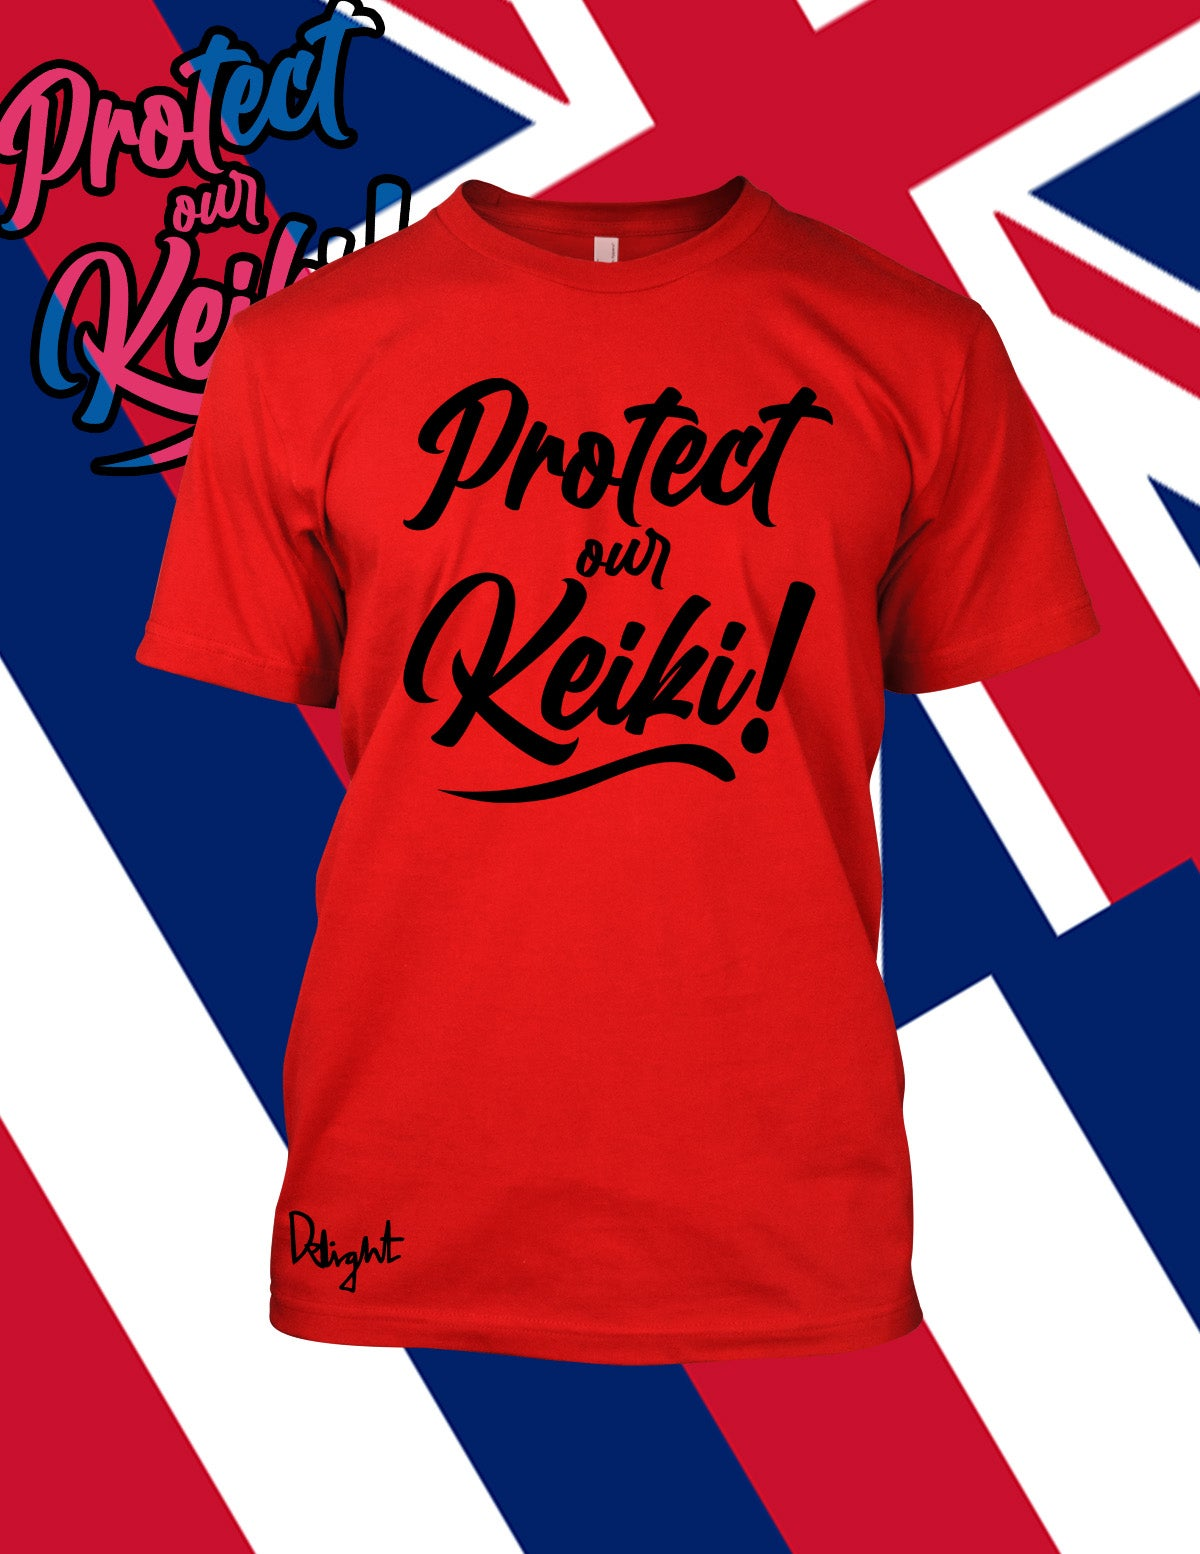 Protect Our Keiki! Red t-shirt